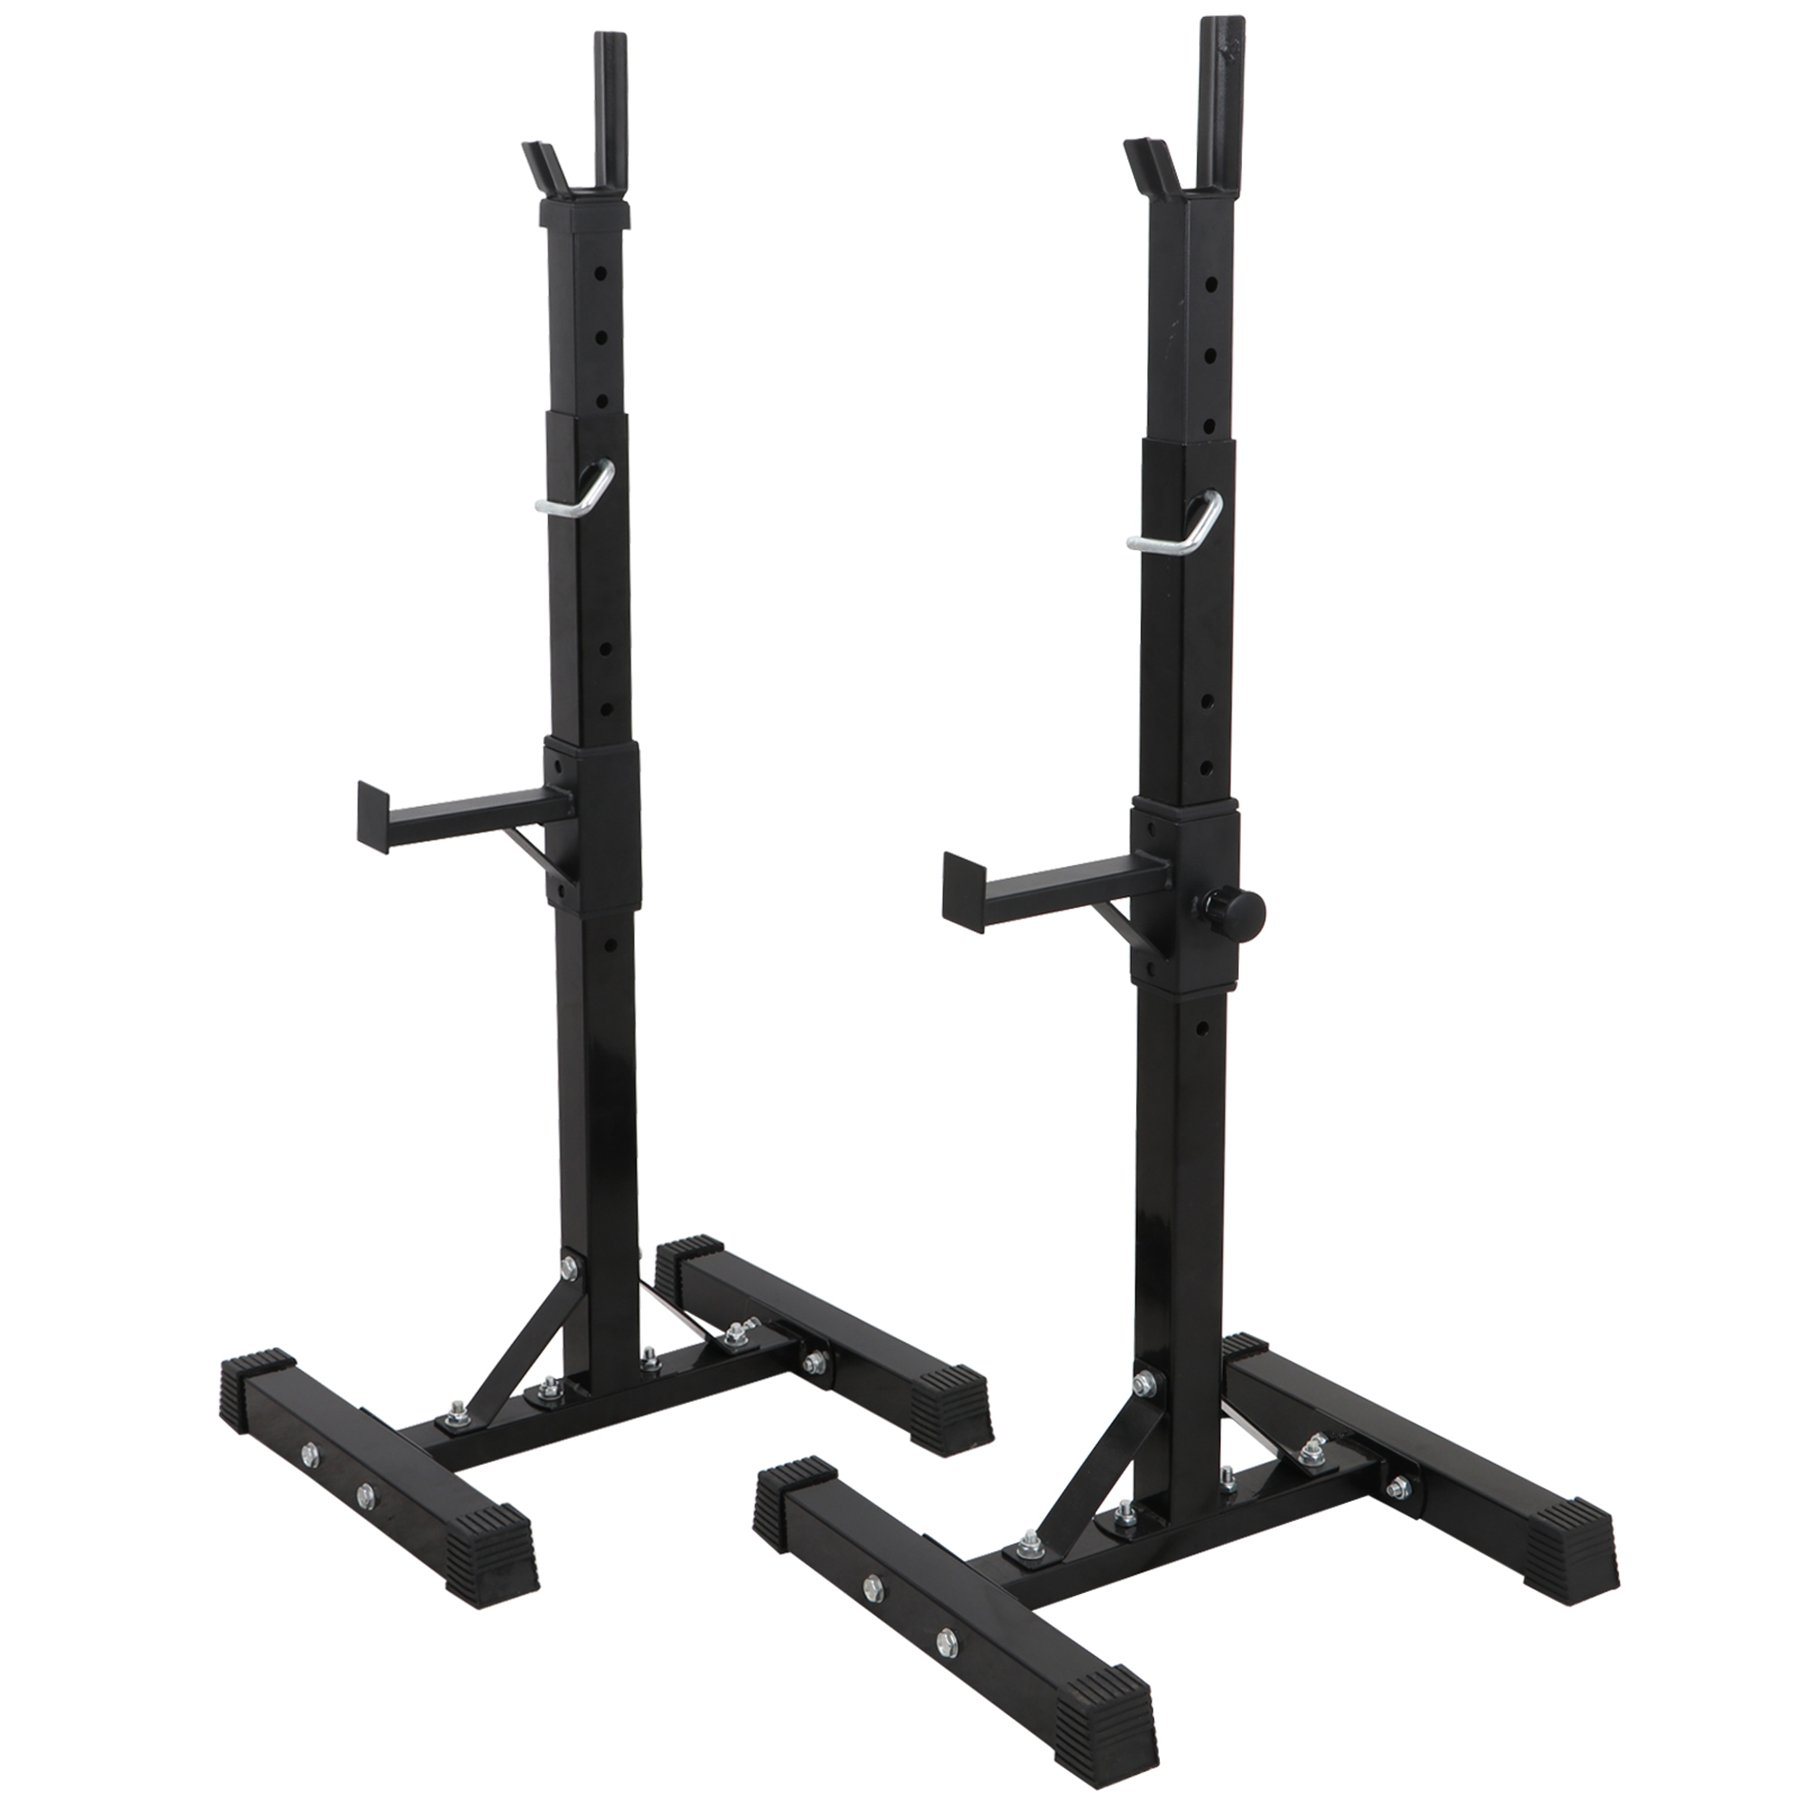 F2C Pair of Adjustable 41''-66'' Sturdy Steel Squat Rack Barbell Free Bench Press Stand Gym/Home Gym Portable Dumbbell Racks Stand Max 550lbs by F2C (Image #4)